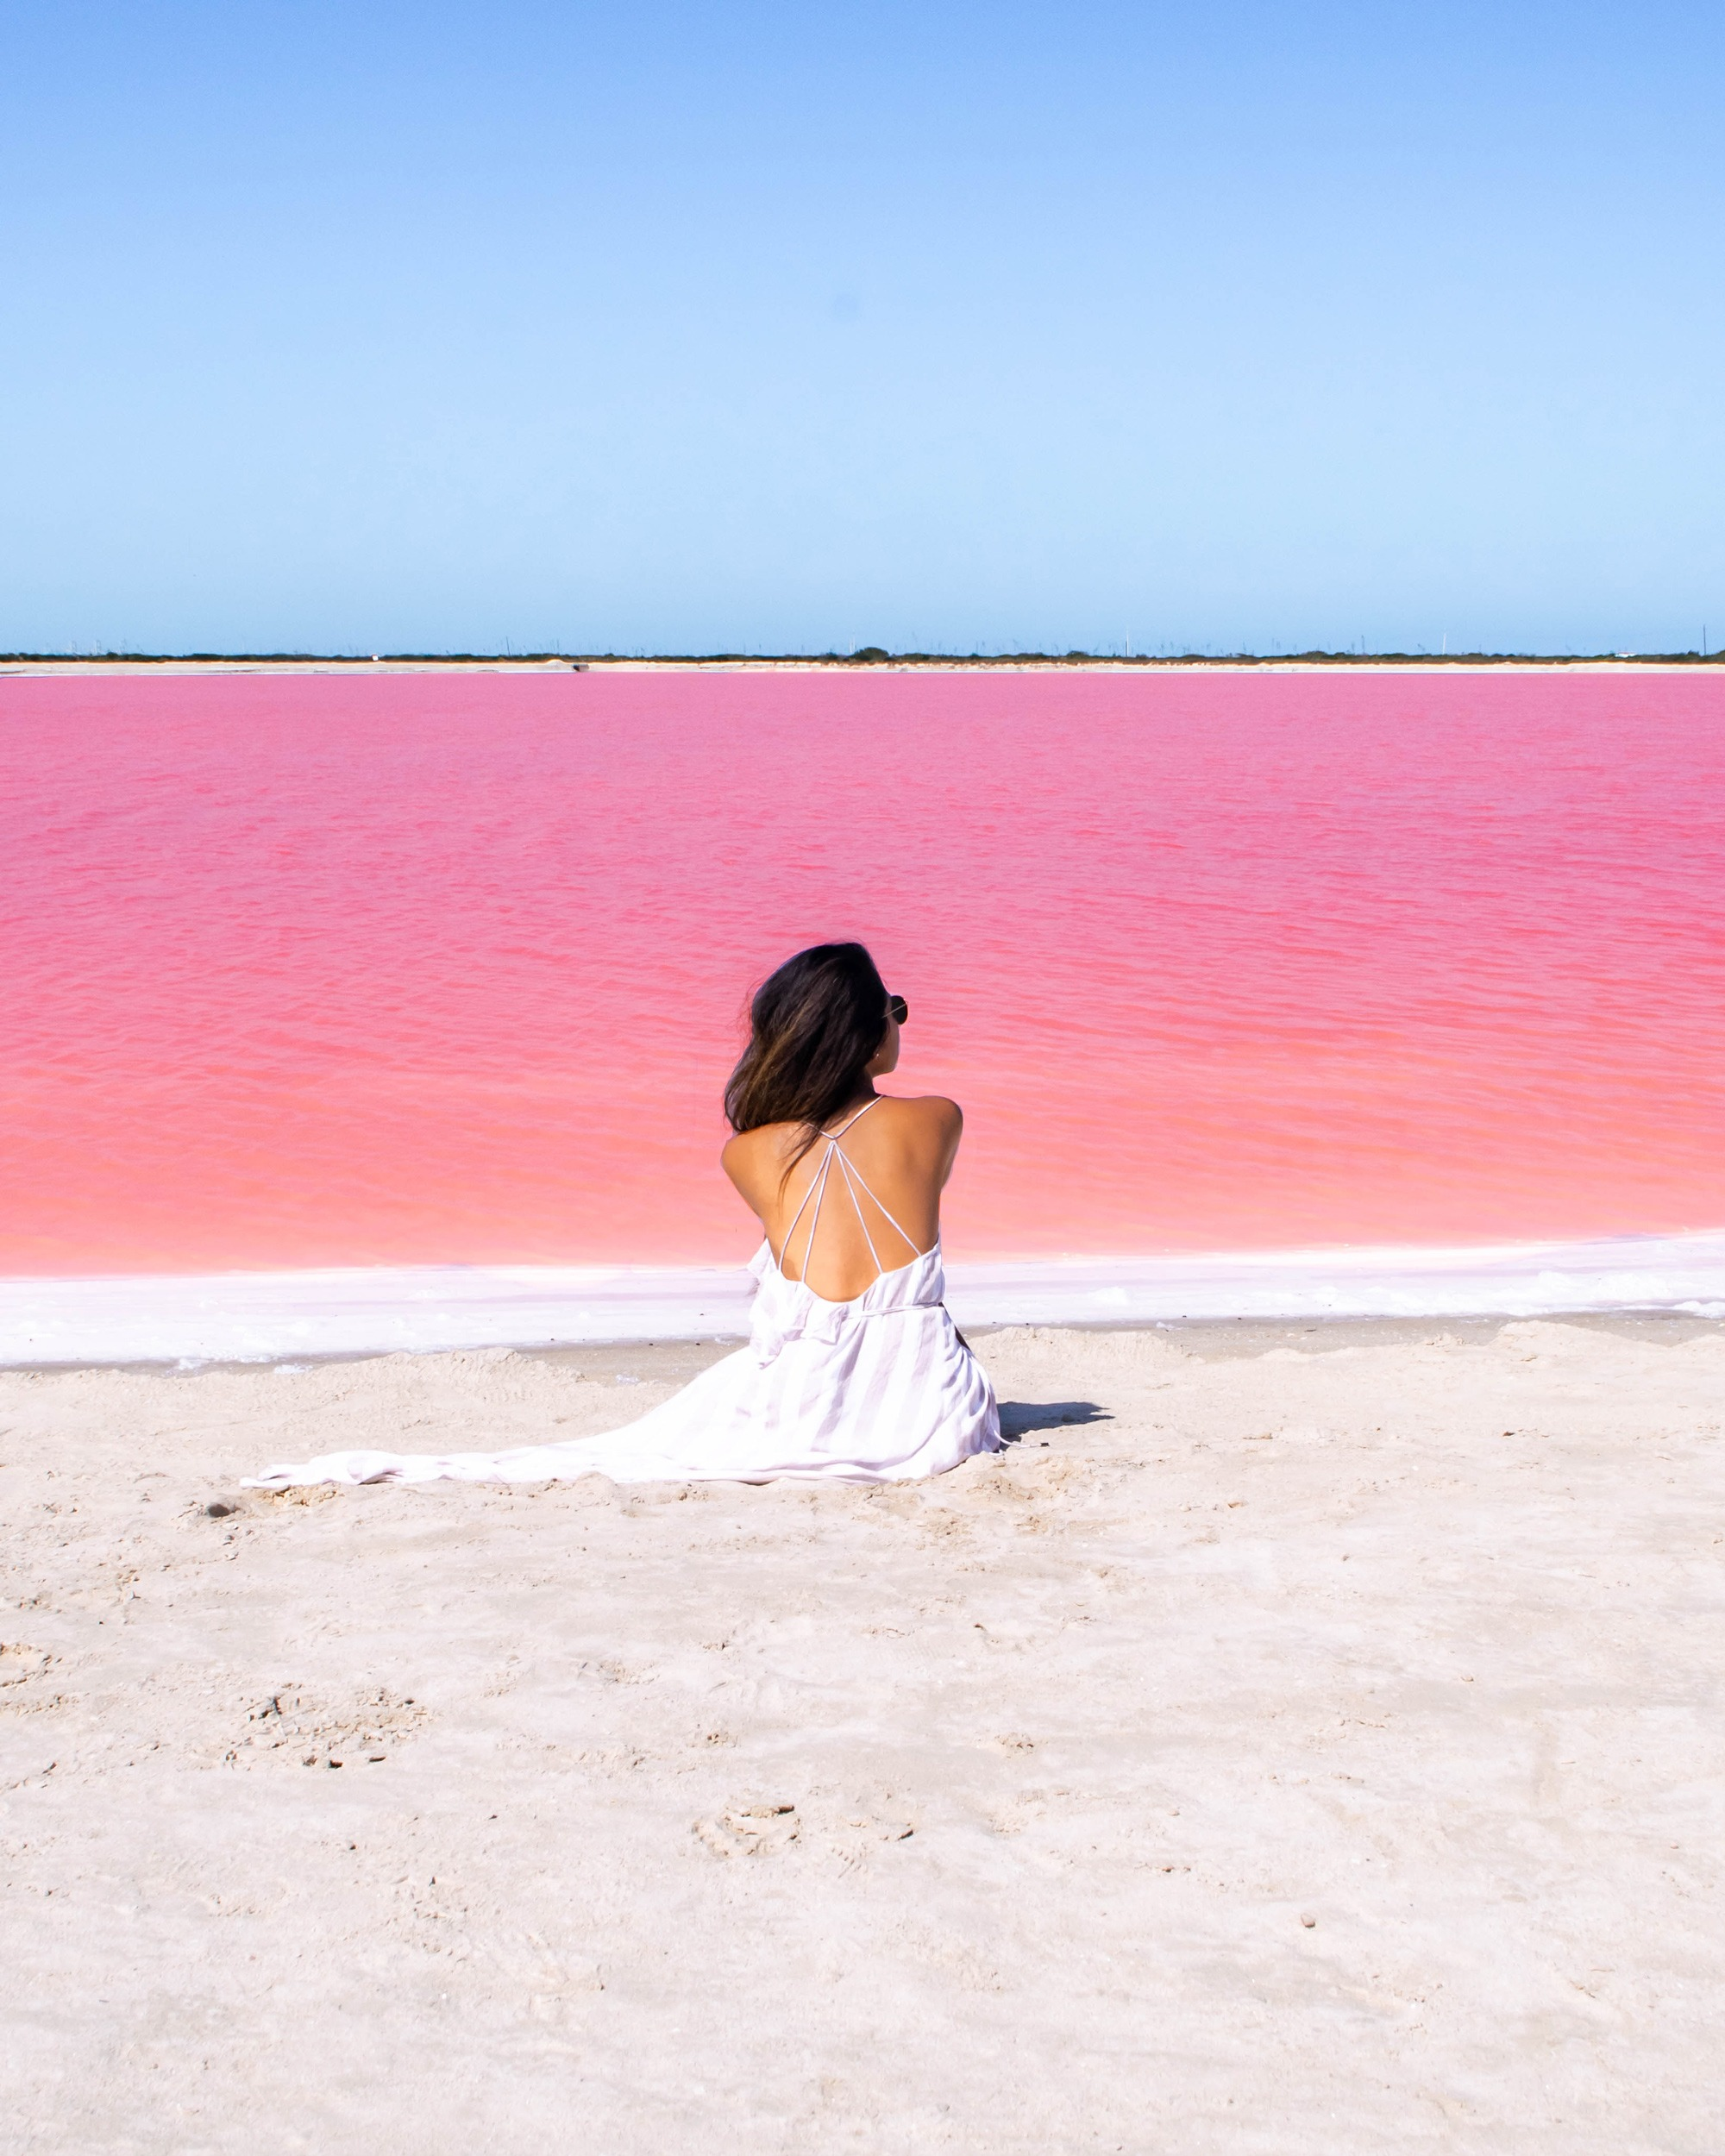 Marcy Yu Las Coloradas Yucatan Mexico Pink lake